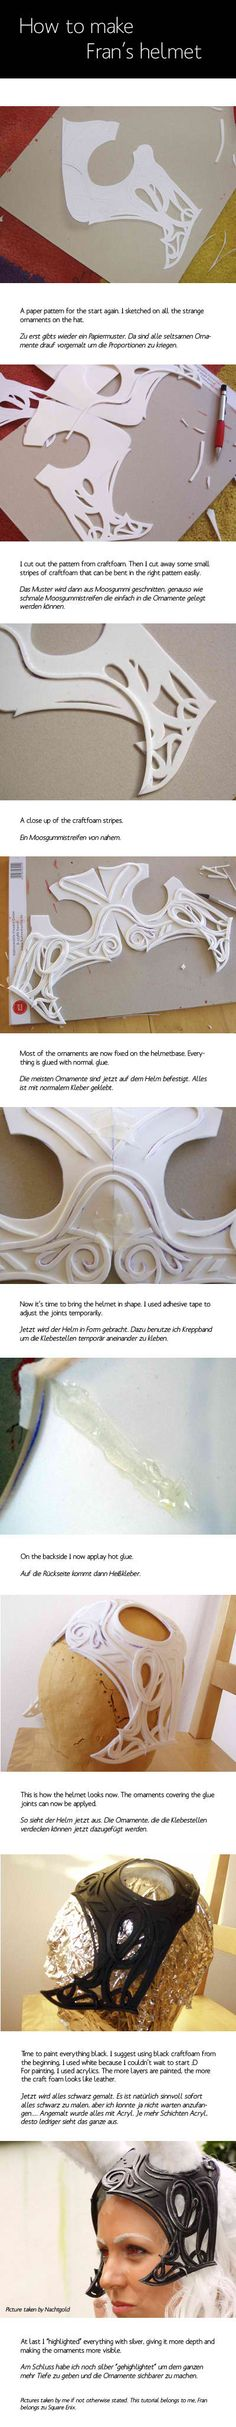 Craft foam armor: how to make it yourself